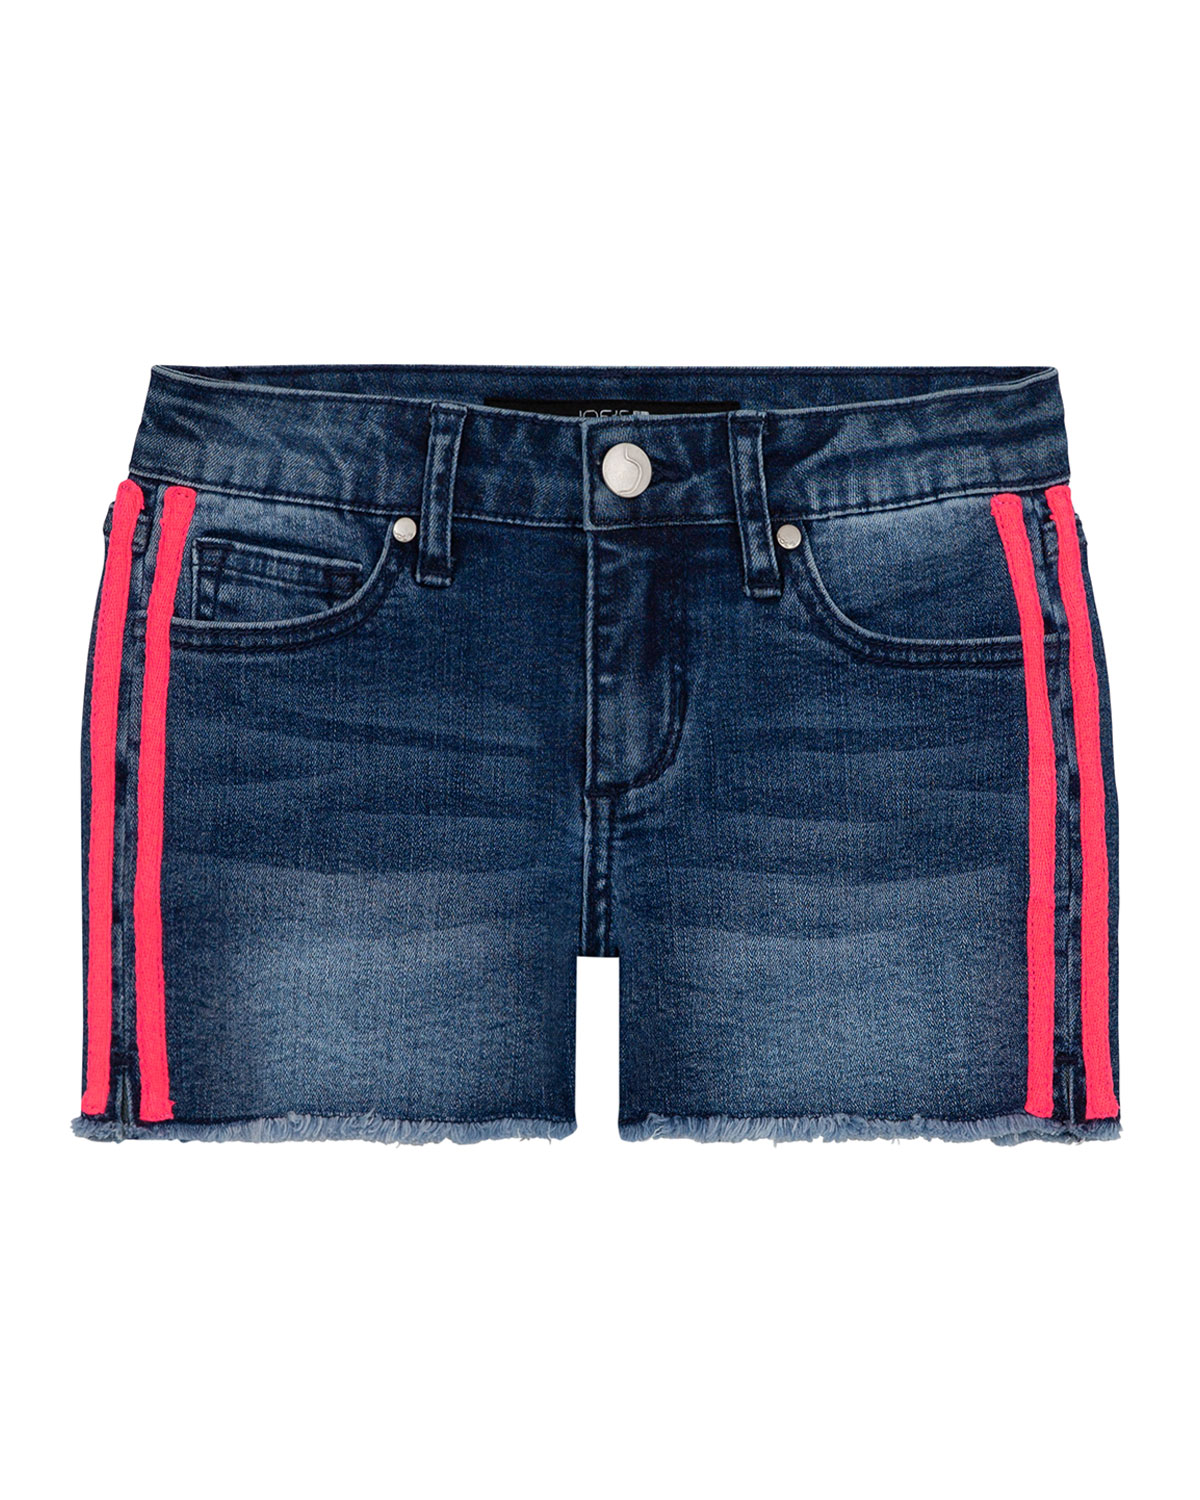 Joe's Jeans Girl's Neon Side-Tape Denim Shorts, Size 4-6X